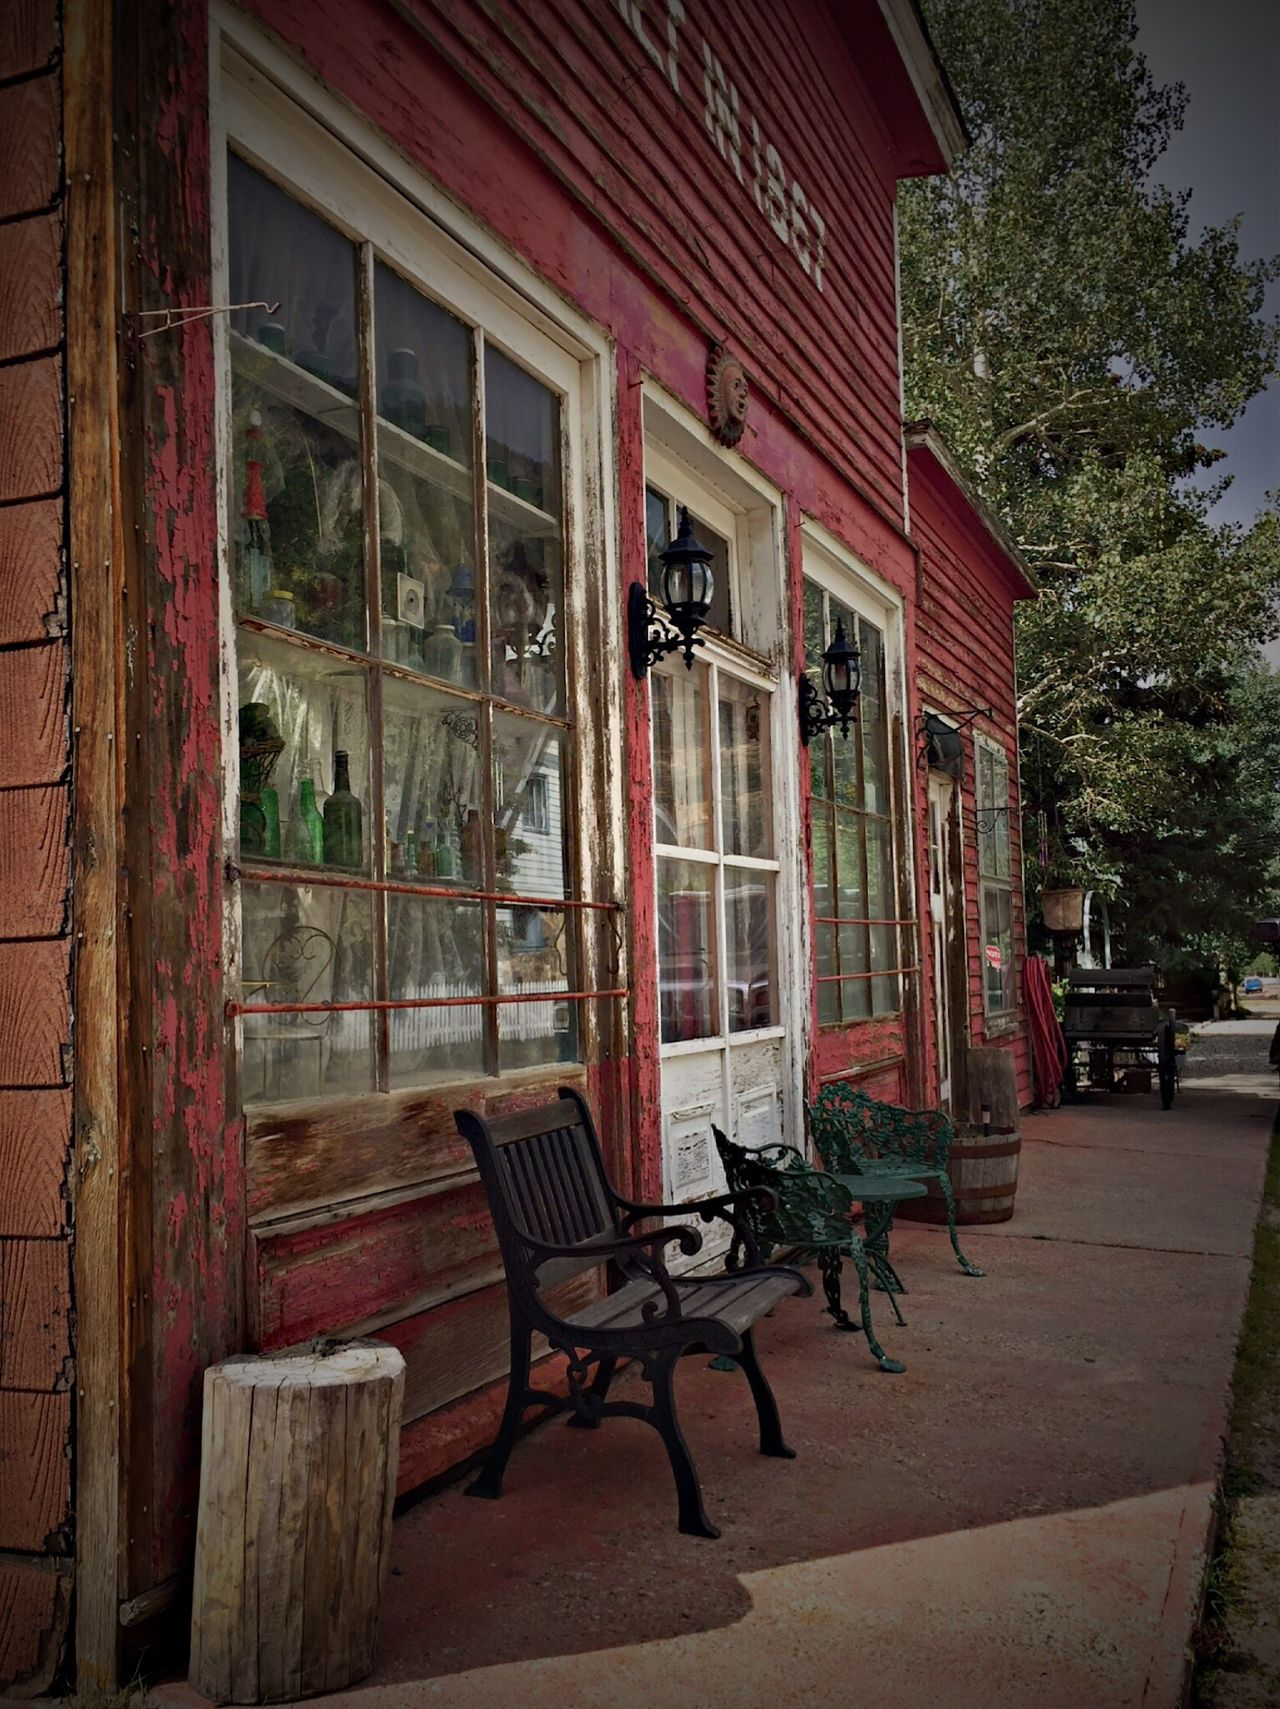 Not Park Bench Thursday Architecture Building Exterior Built Structure Empty Window Outdoors Outside No People Storefront Quaint  Georgetown, CO